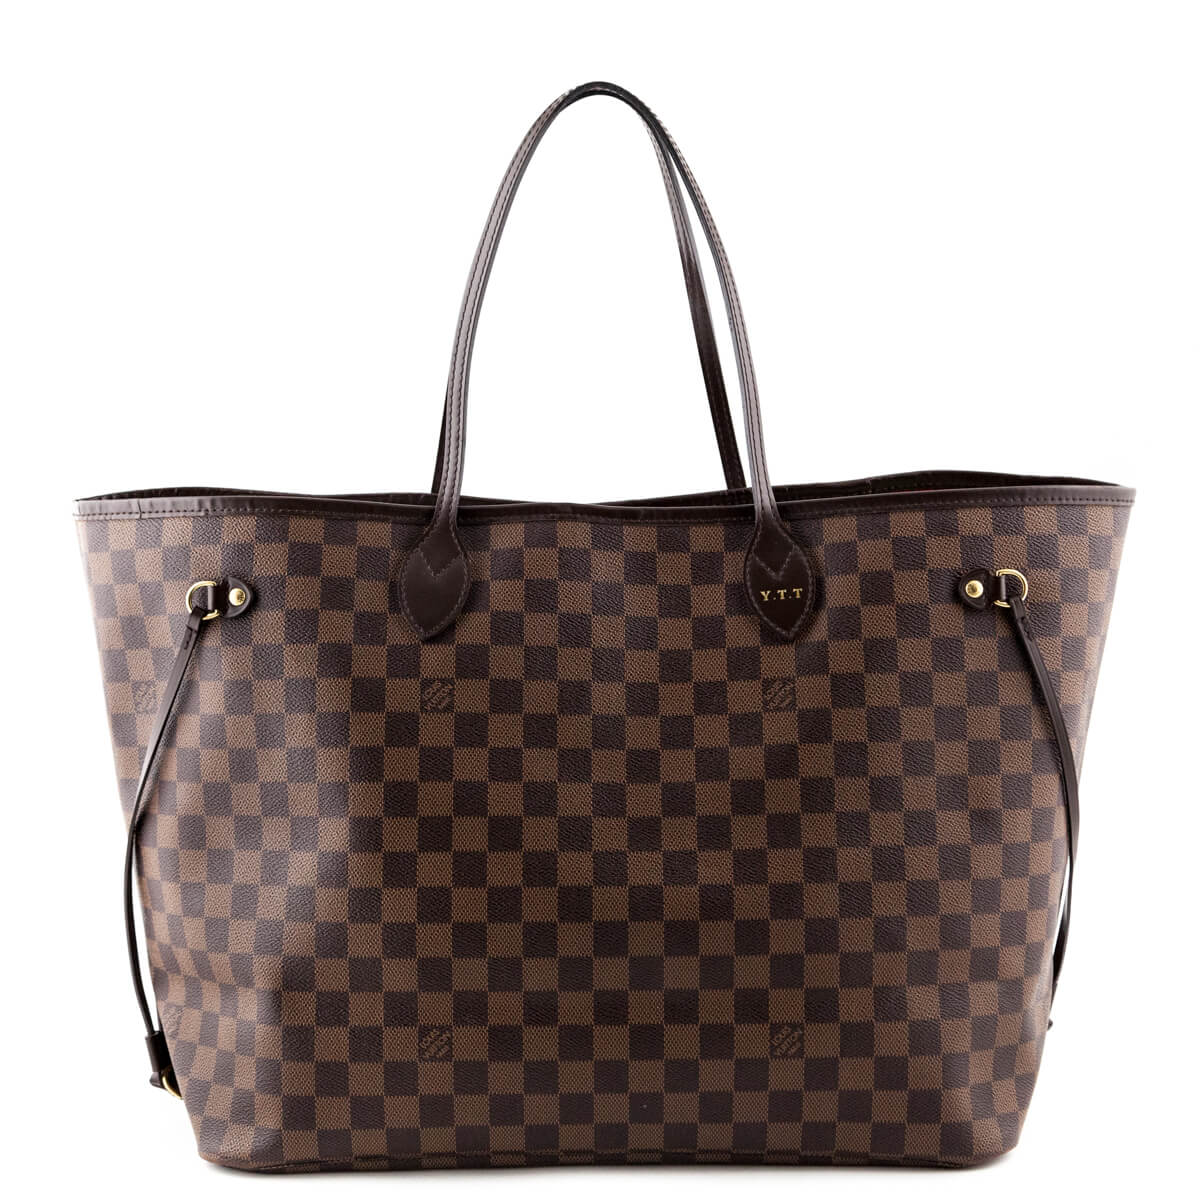 Louis Vuitton Damier Ebene Neverfull GM - LOVE that BAG - Preowned  Authentic Designer Handbags ... a0ff590e6ffd2